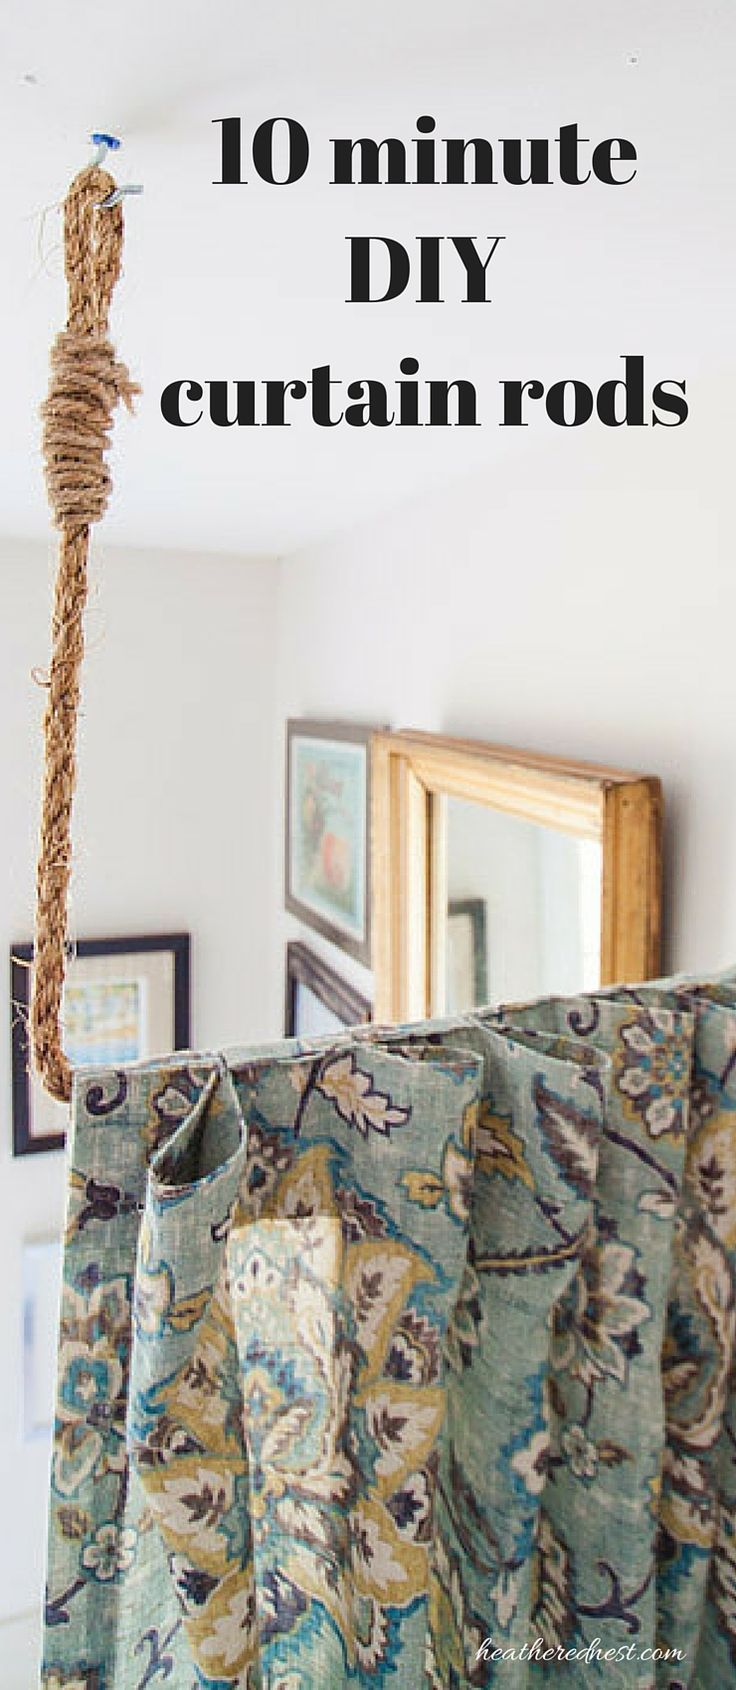 Here's How To Make Your Own DIY Curtain Rod In 10Minutes